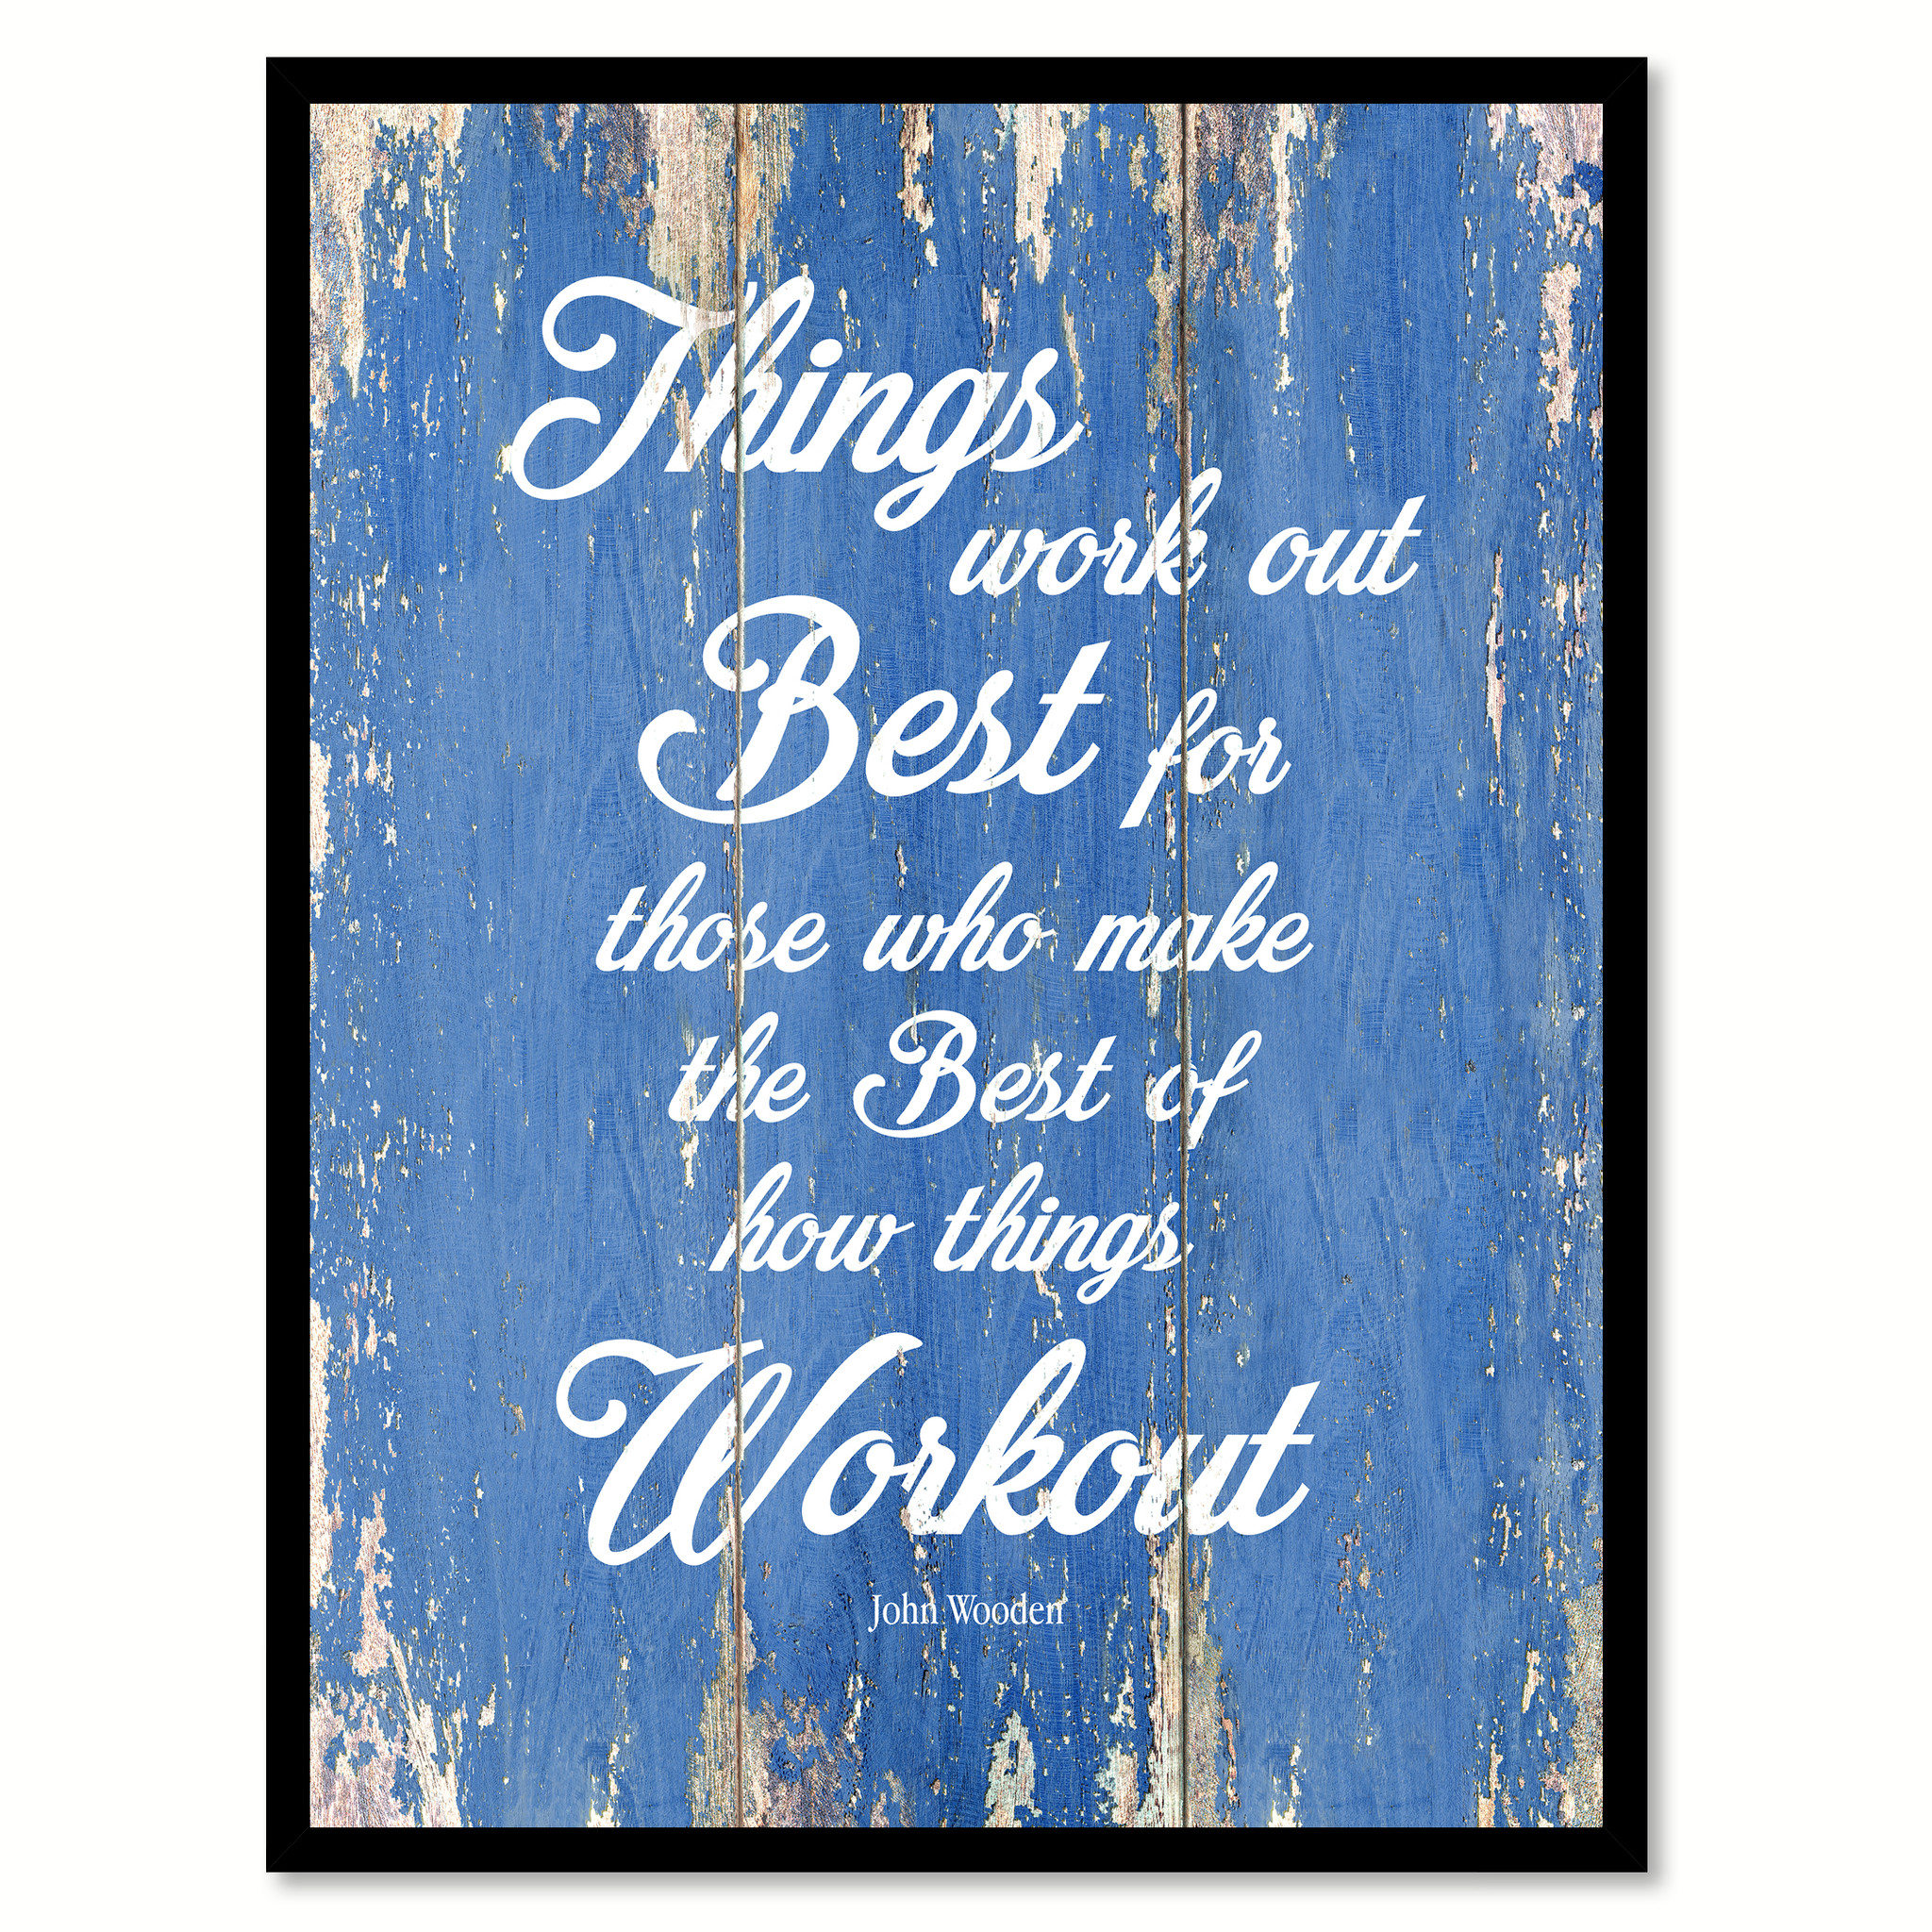 "Things Work Out Best For Those Who Make The Best Of How Things Workout Saying Canvas Print with Picture Frame Home Decor Wall Art Gifts - 7""x9\"""